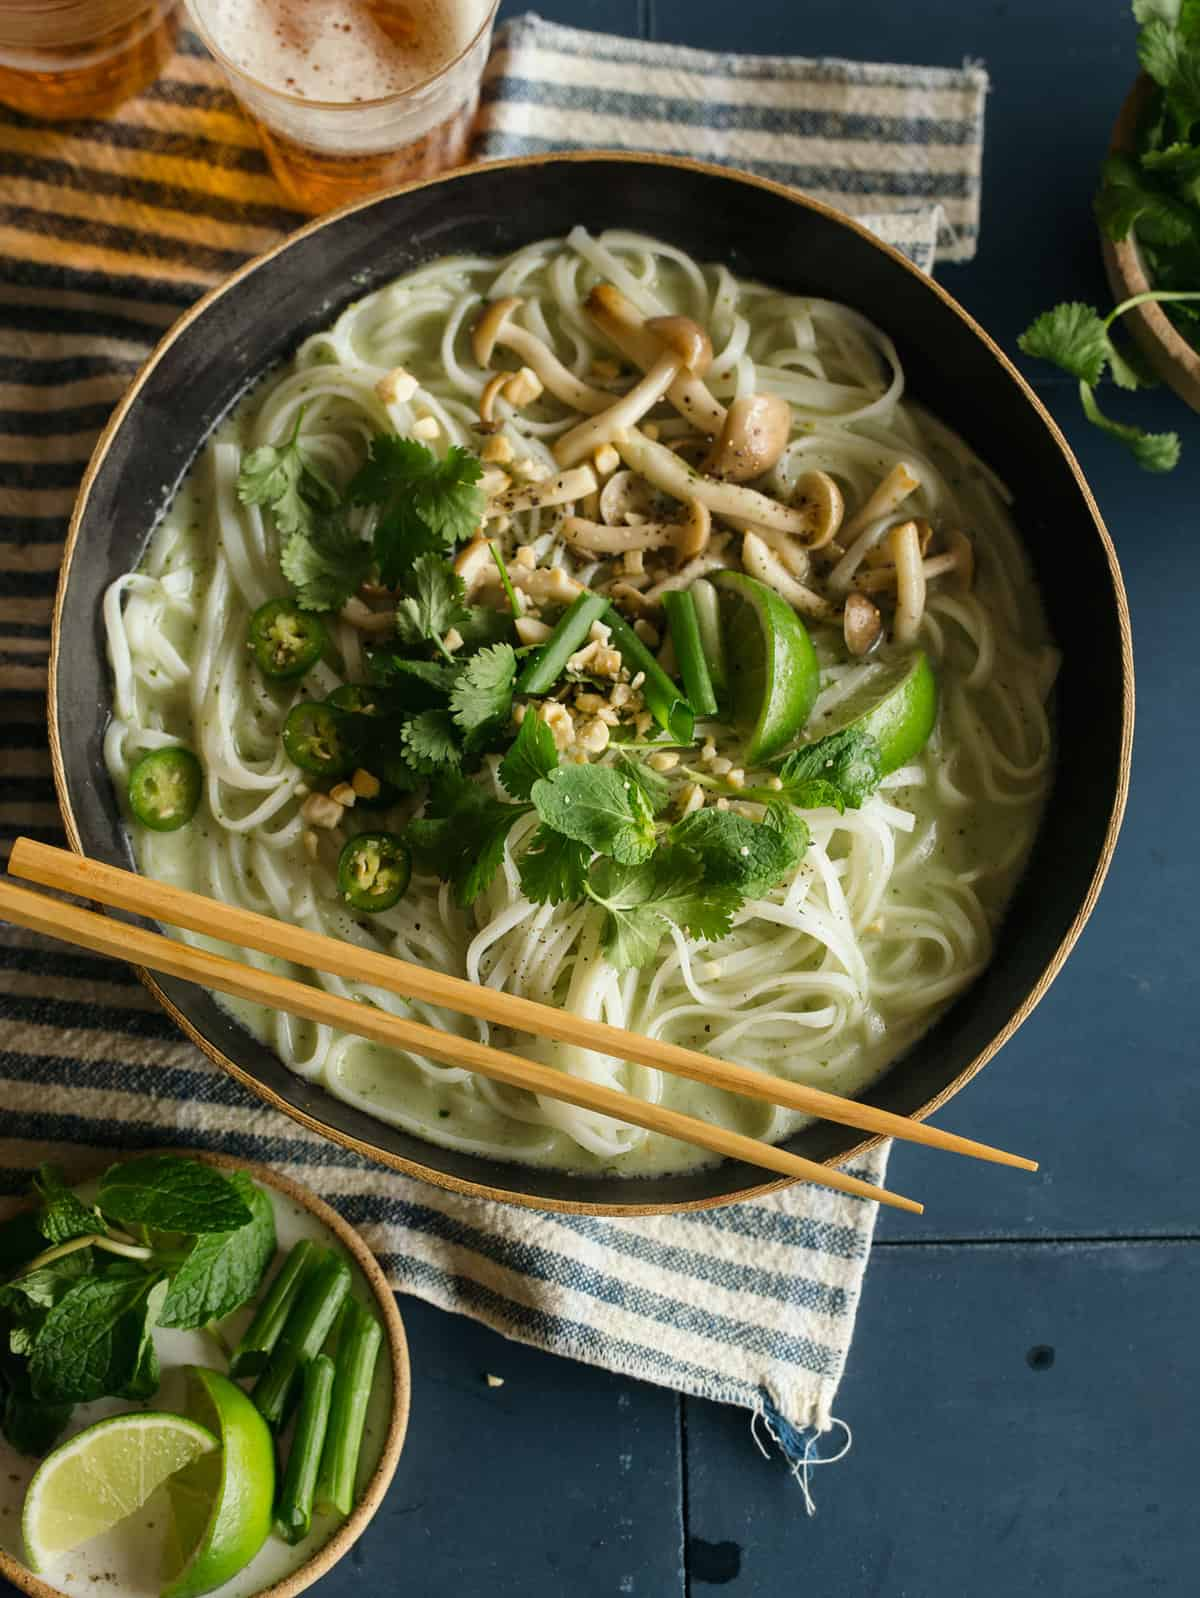 A bowl of green curry noodle soup with chopsticks.